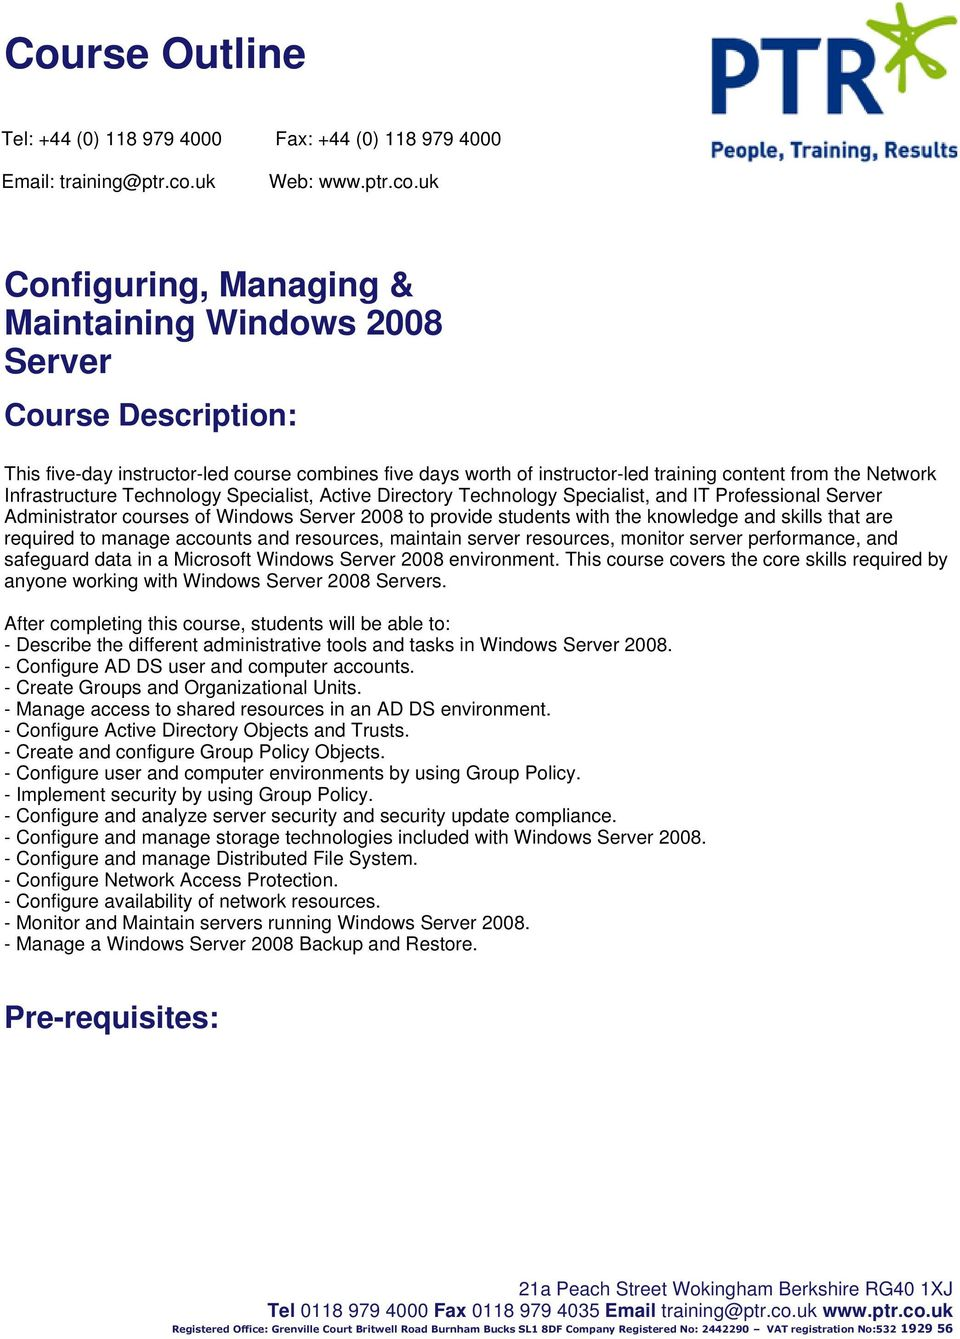 that are required to manage accounts and resources, maintain server resources, monitor server performance, and safeguard data in a Microsoft Windows Server 2008 environment.